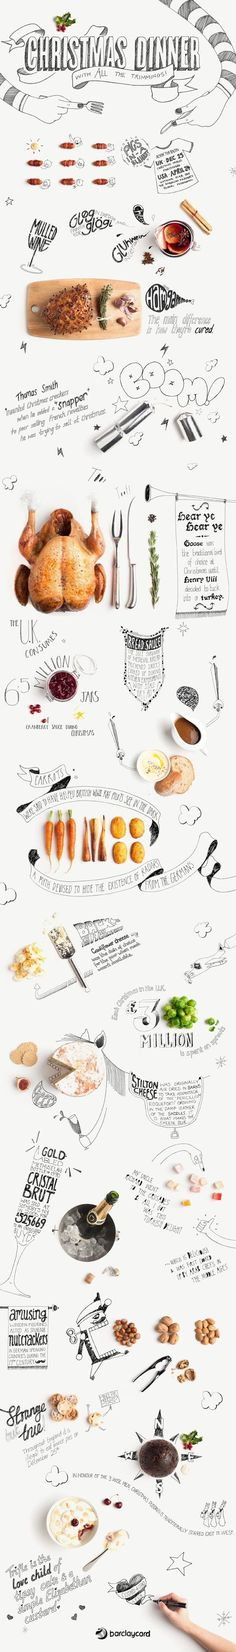 Infographics / Barclays Card Christmas Infographic — Designspiration